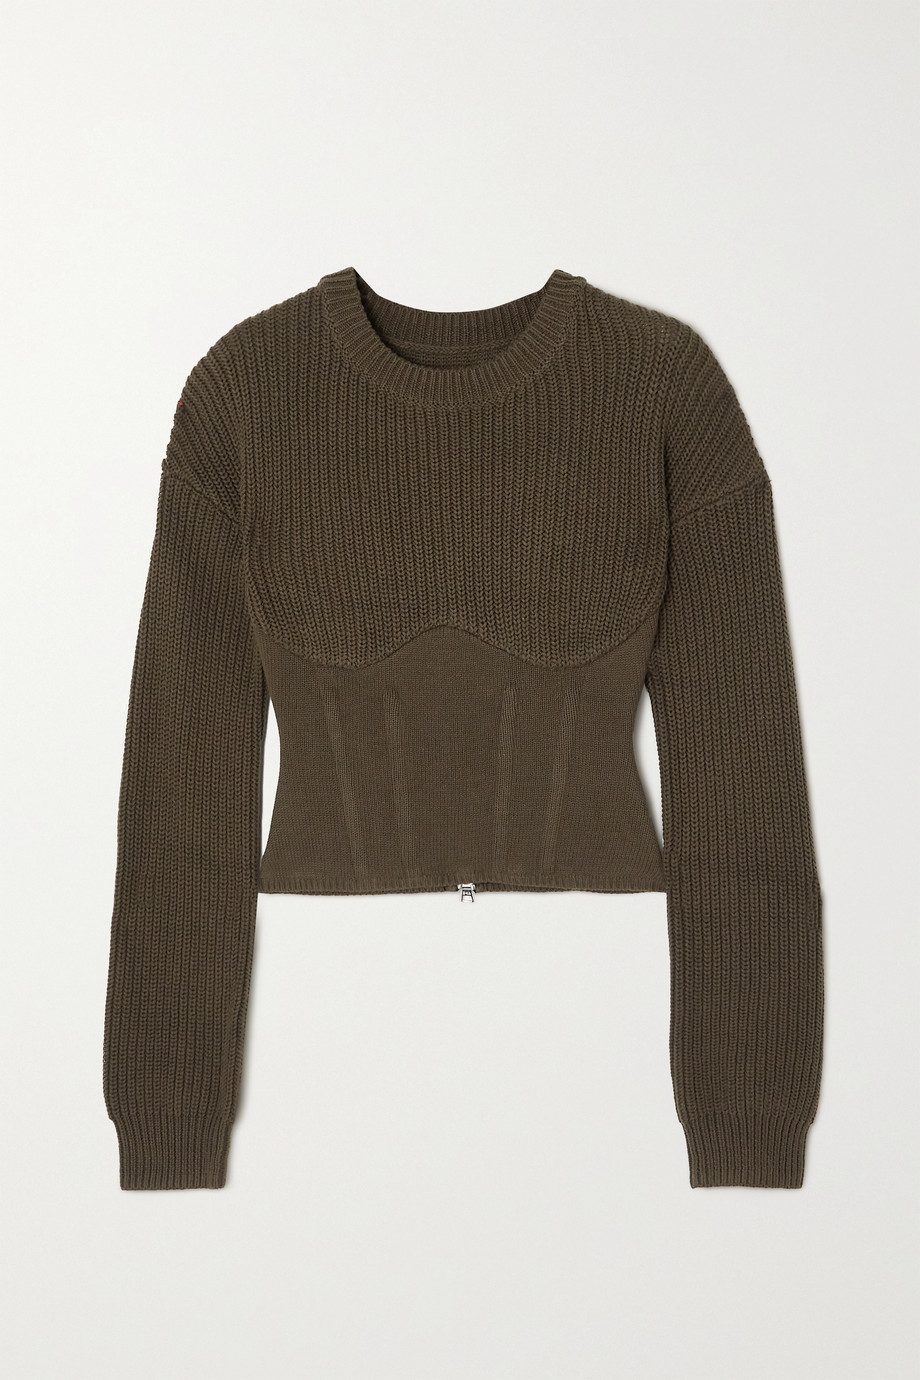 RTA Fitz paneled ribbed cotton sweater